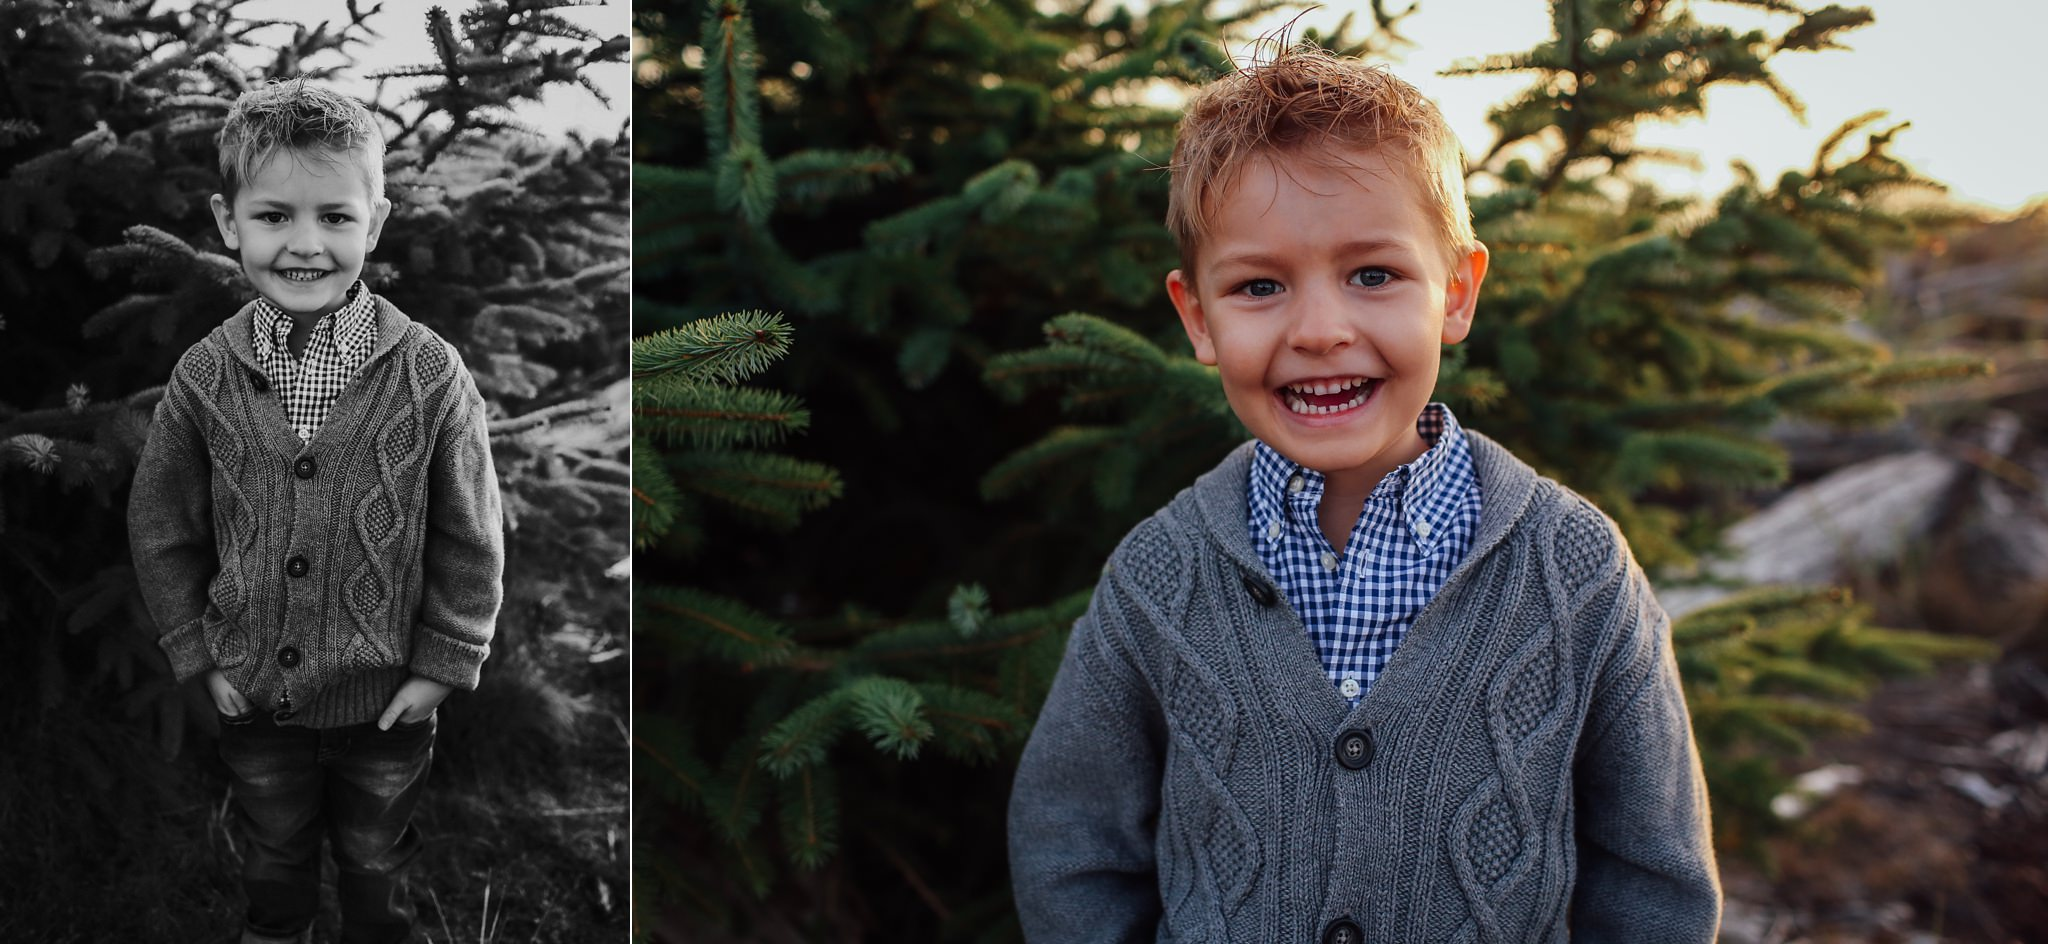 Whidbey-Island-Family-Photographer-Kara-Chappell-Photography_1198.jpg